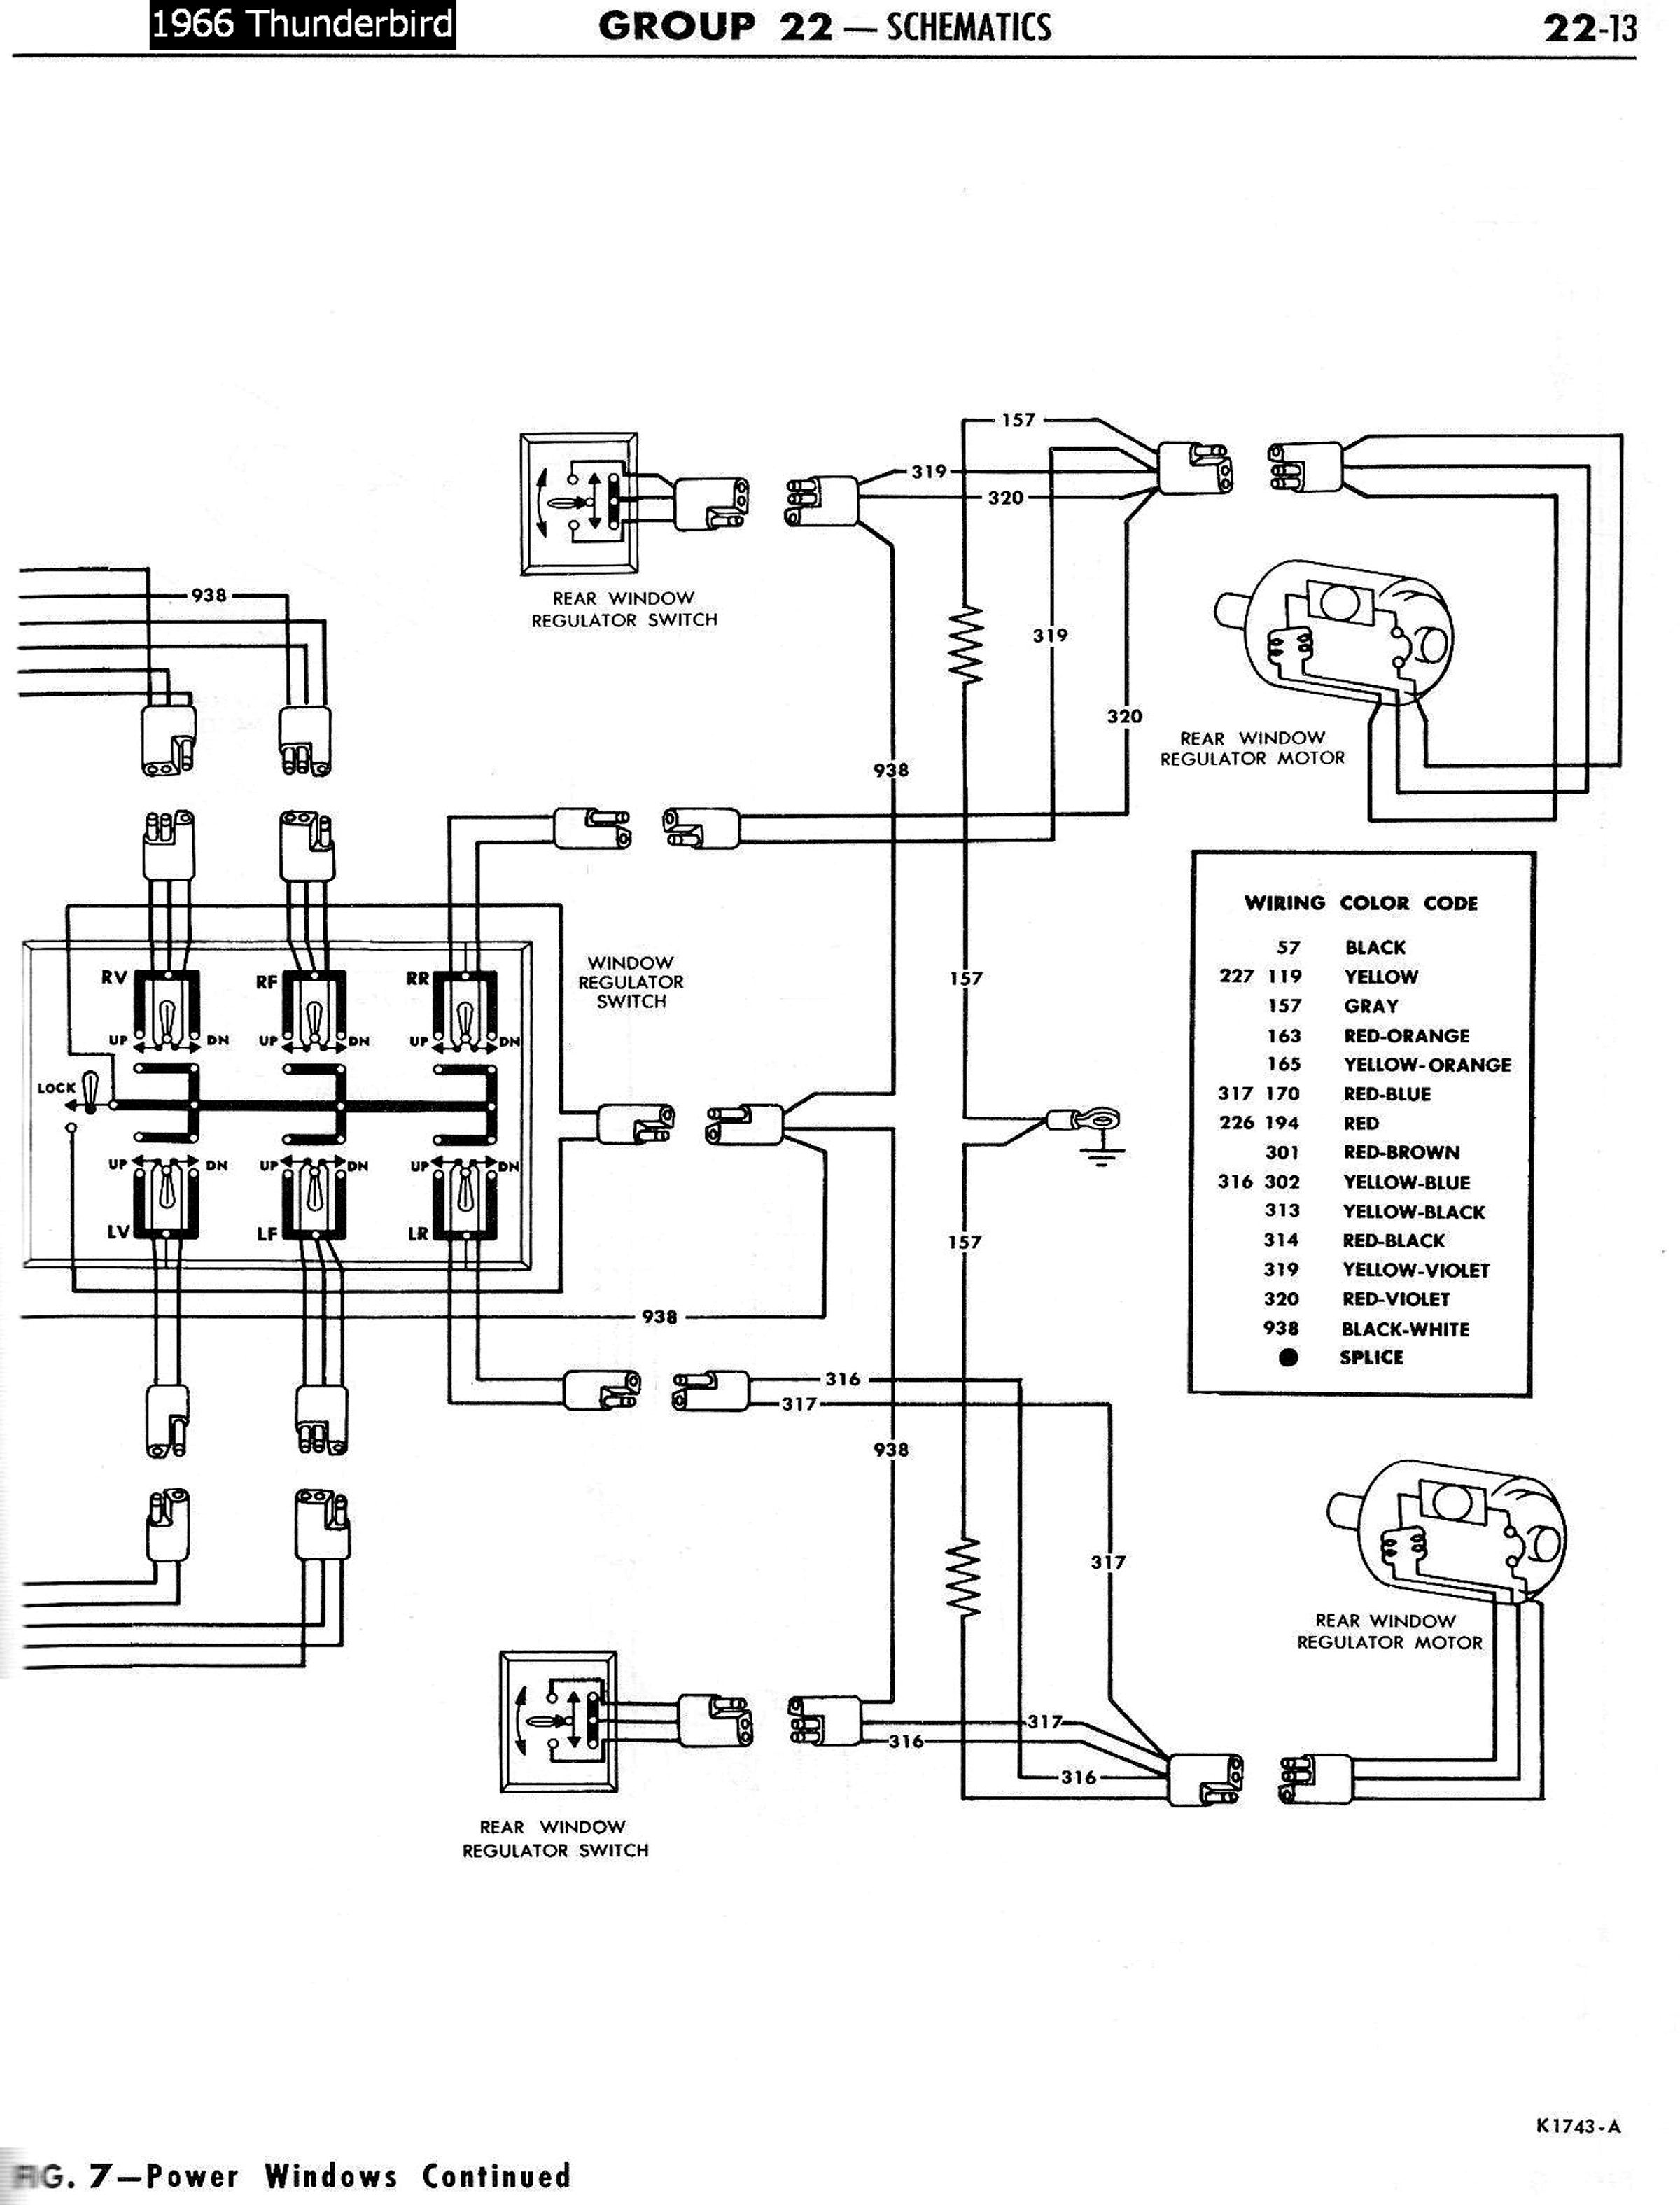 68 Mustang Turn Signal Wiring Diagram Schematic 1955 T Bird Diagram1968 Thunderbird Simple Diagram1958